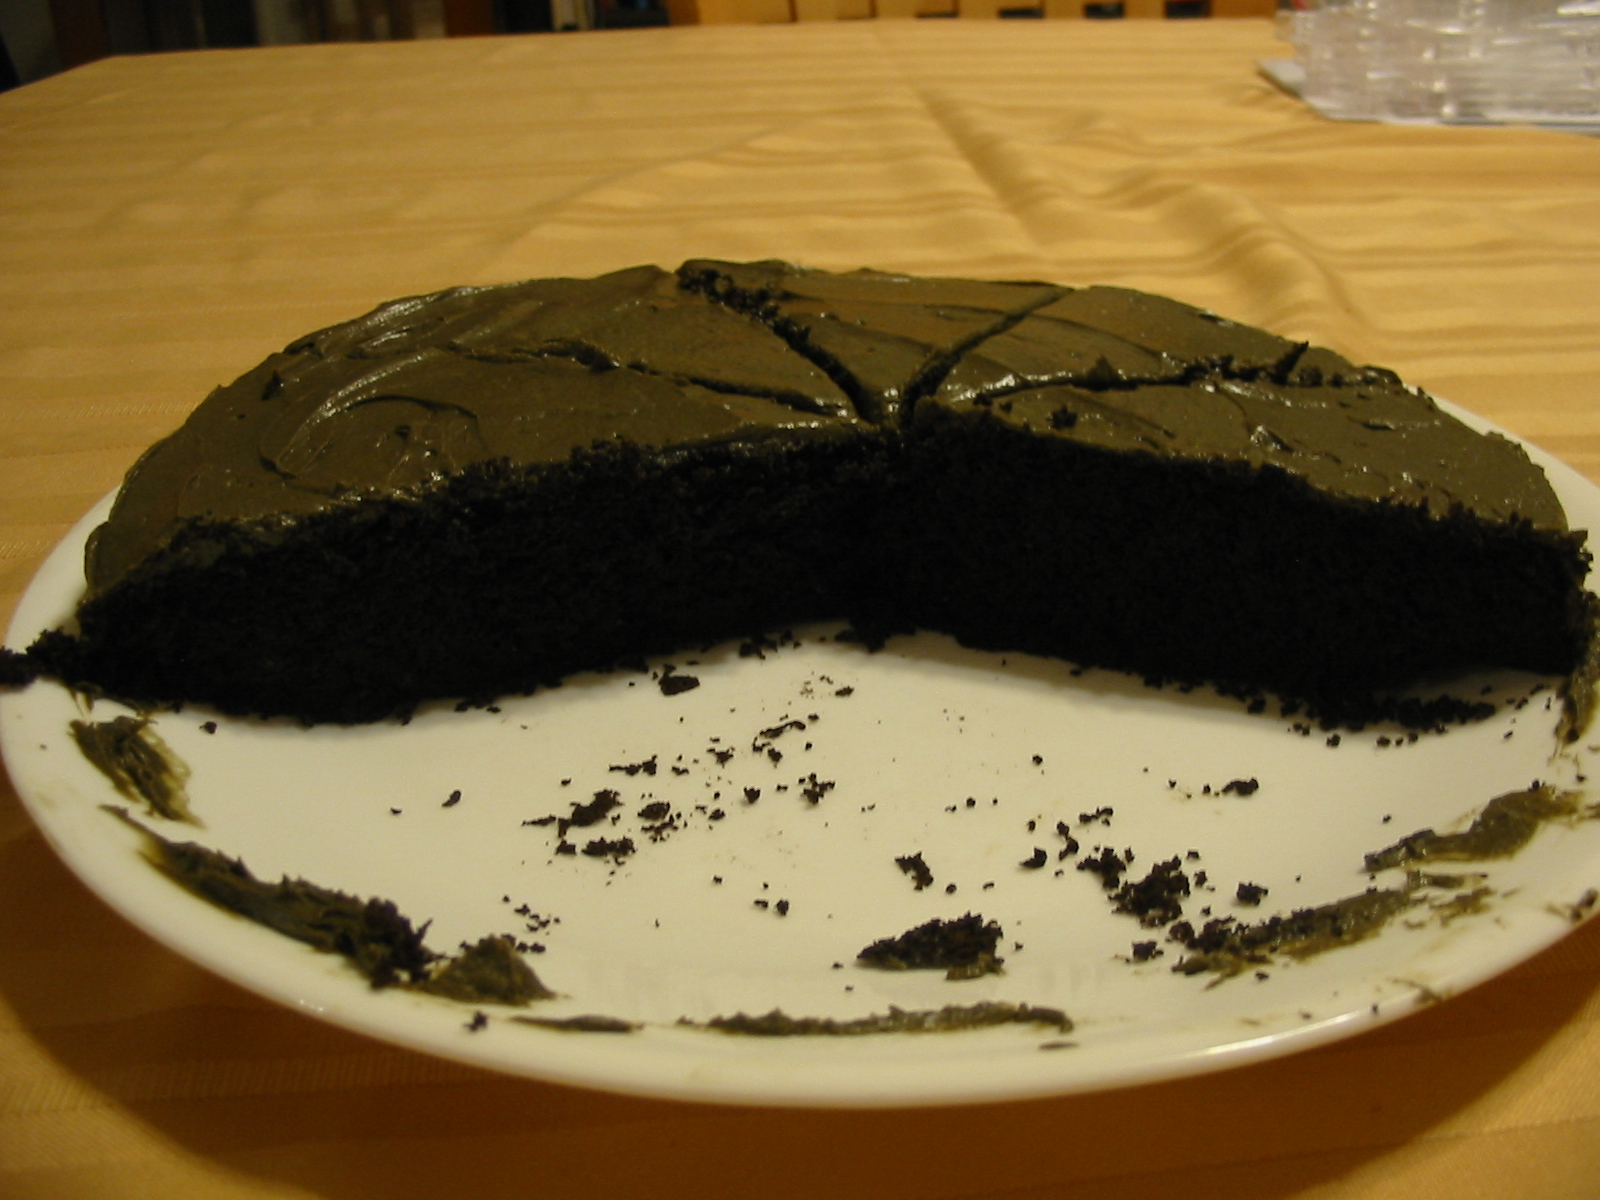 Substitution For Whole Milk In Cake Recipe